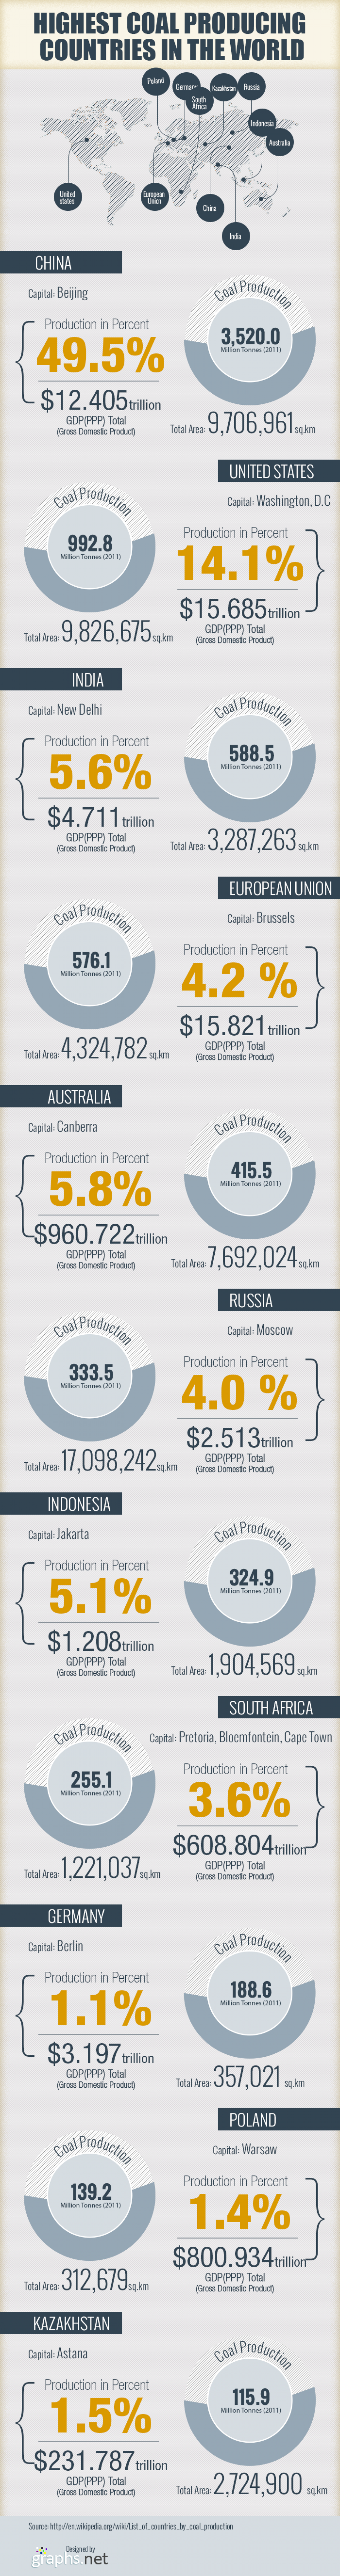 World's largest coal producing countries Infographic